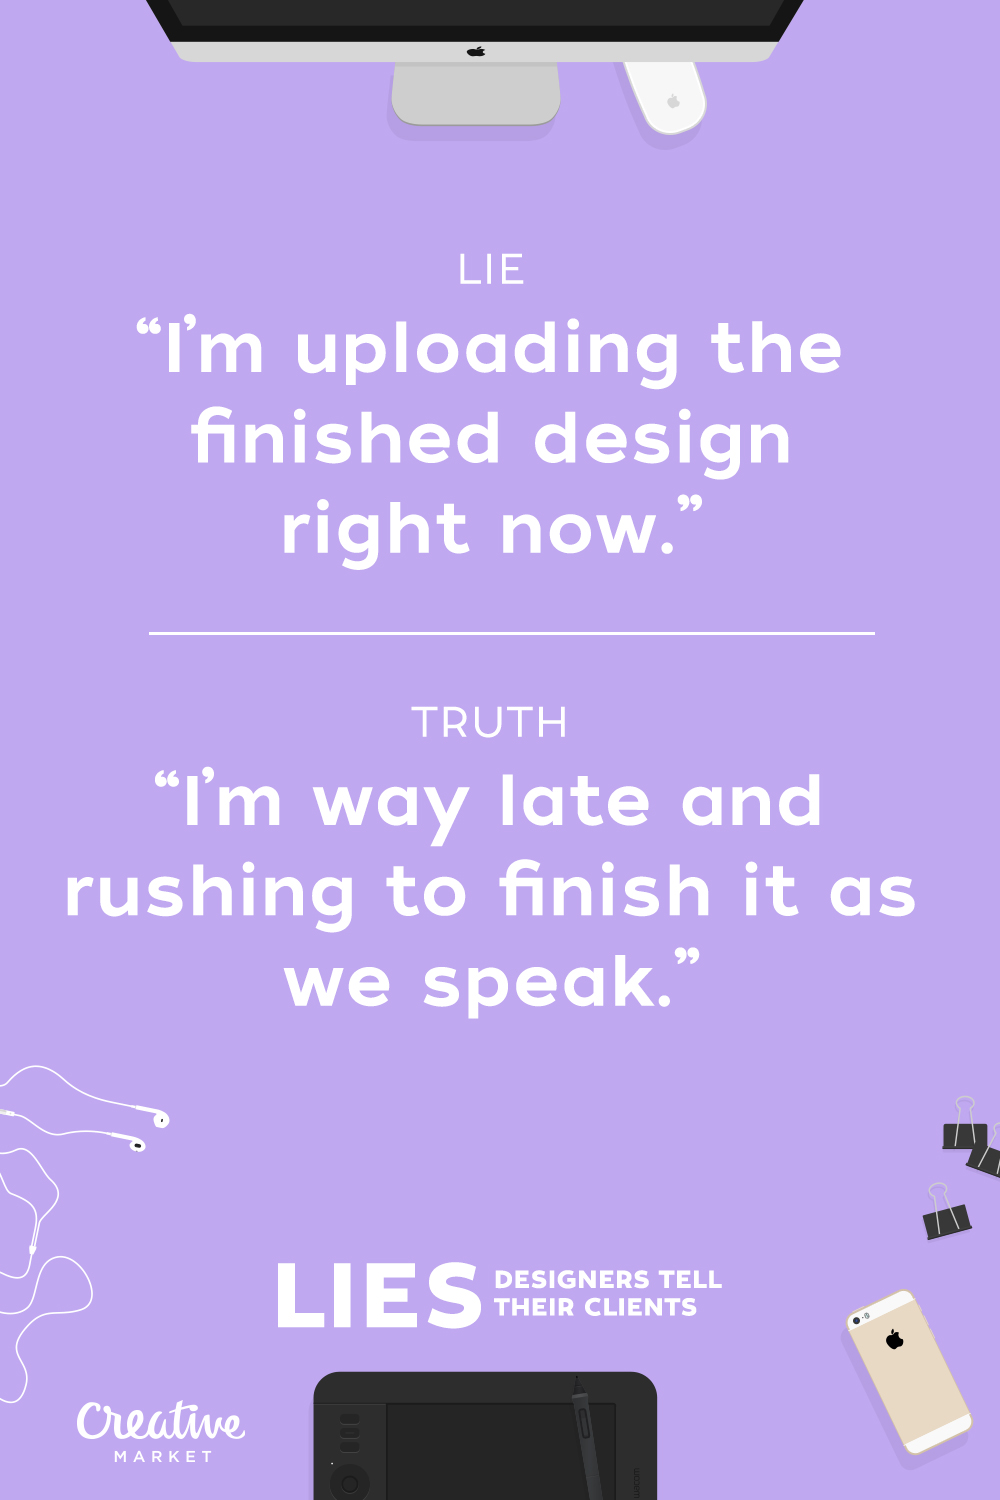 Posters Revealing the Lies Designers Tell Their Clients - Girly Design Blog